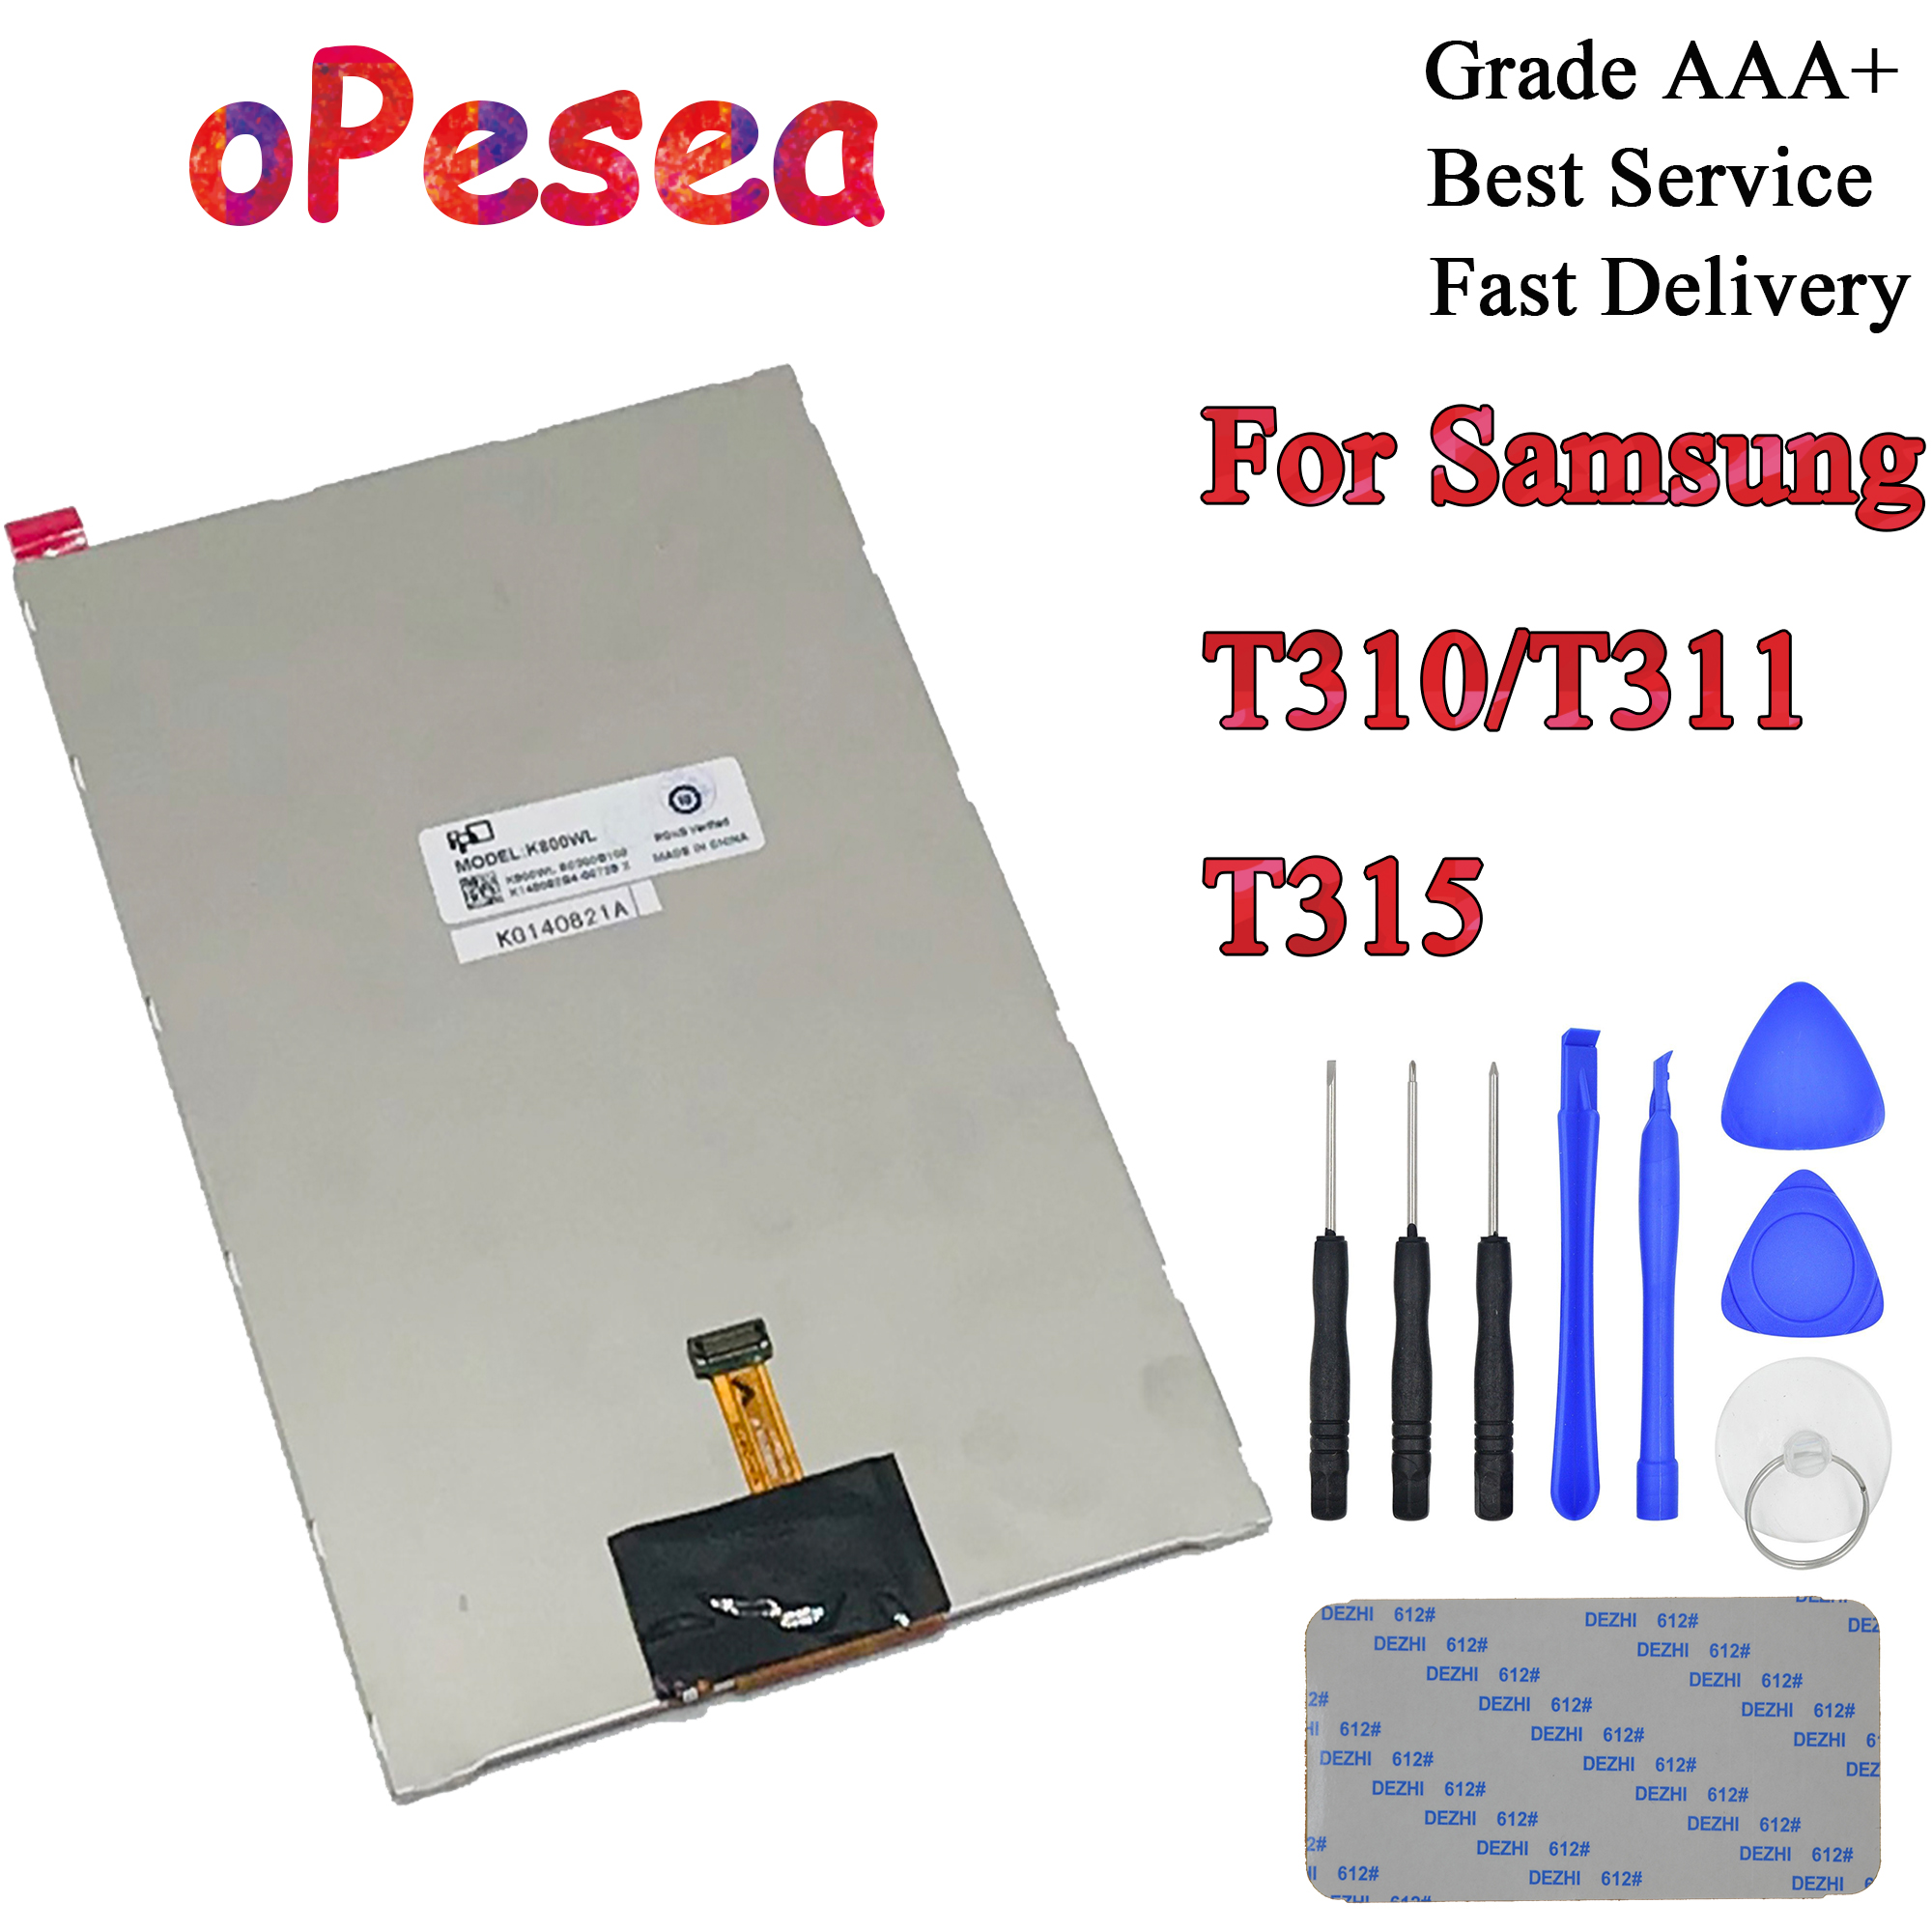 oPesea For <font><b>Samsung</b></font> Galaxy Tab 3 8.0 T310 <font><b>T311</b></font> T315 SM-T310 SM-<font><b>T311</b></font> SM-T315 <font><b>LCD</b></font> Display Panel Screen Monitor Replacement Parts image